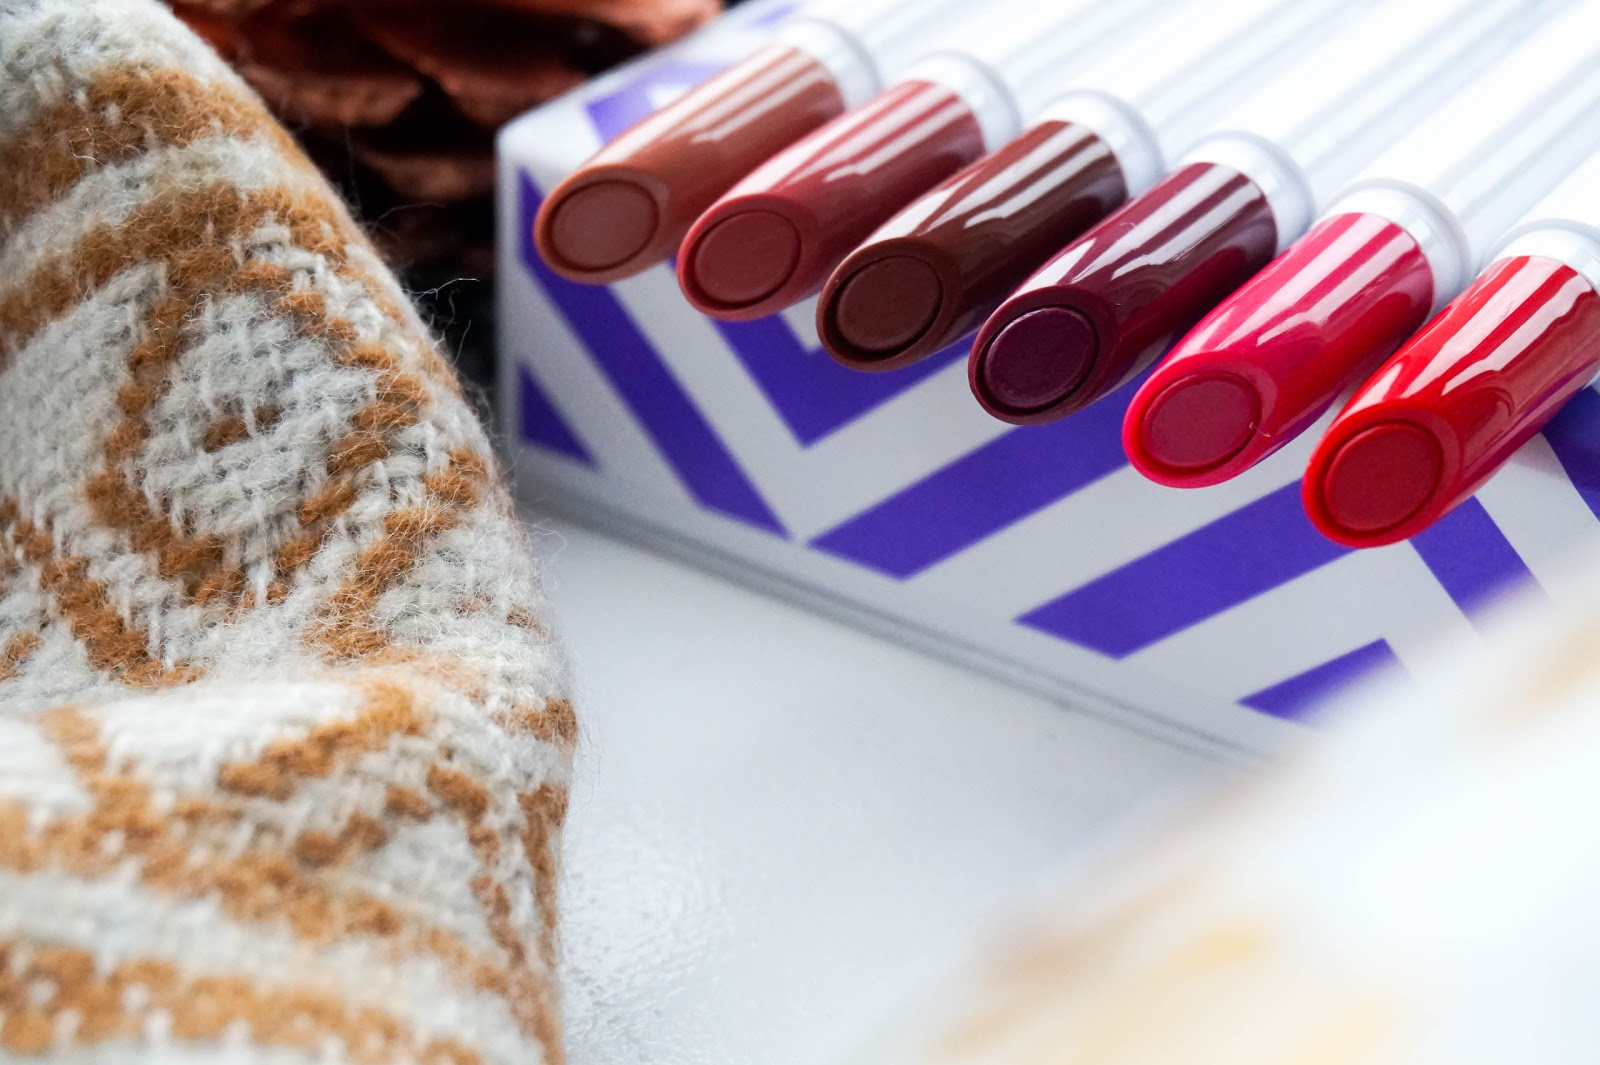 Colourpop Staycation Lippie Stix Set